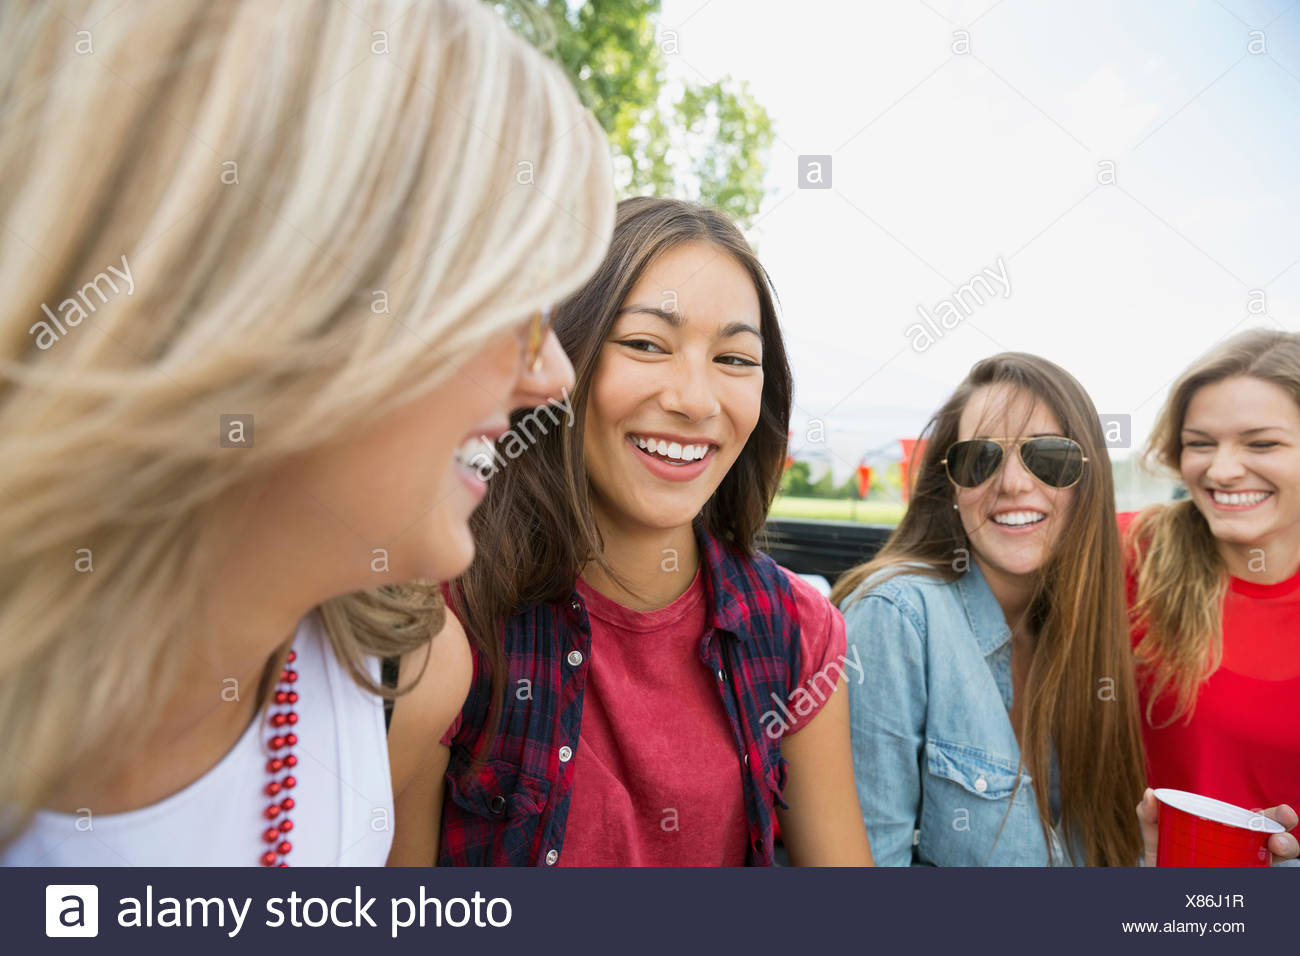 Women smiling together outdoors Photo Stock